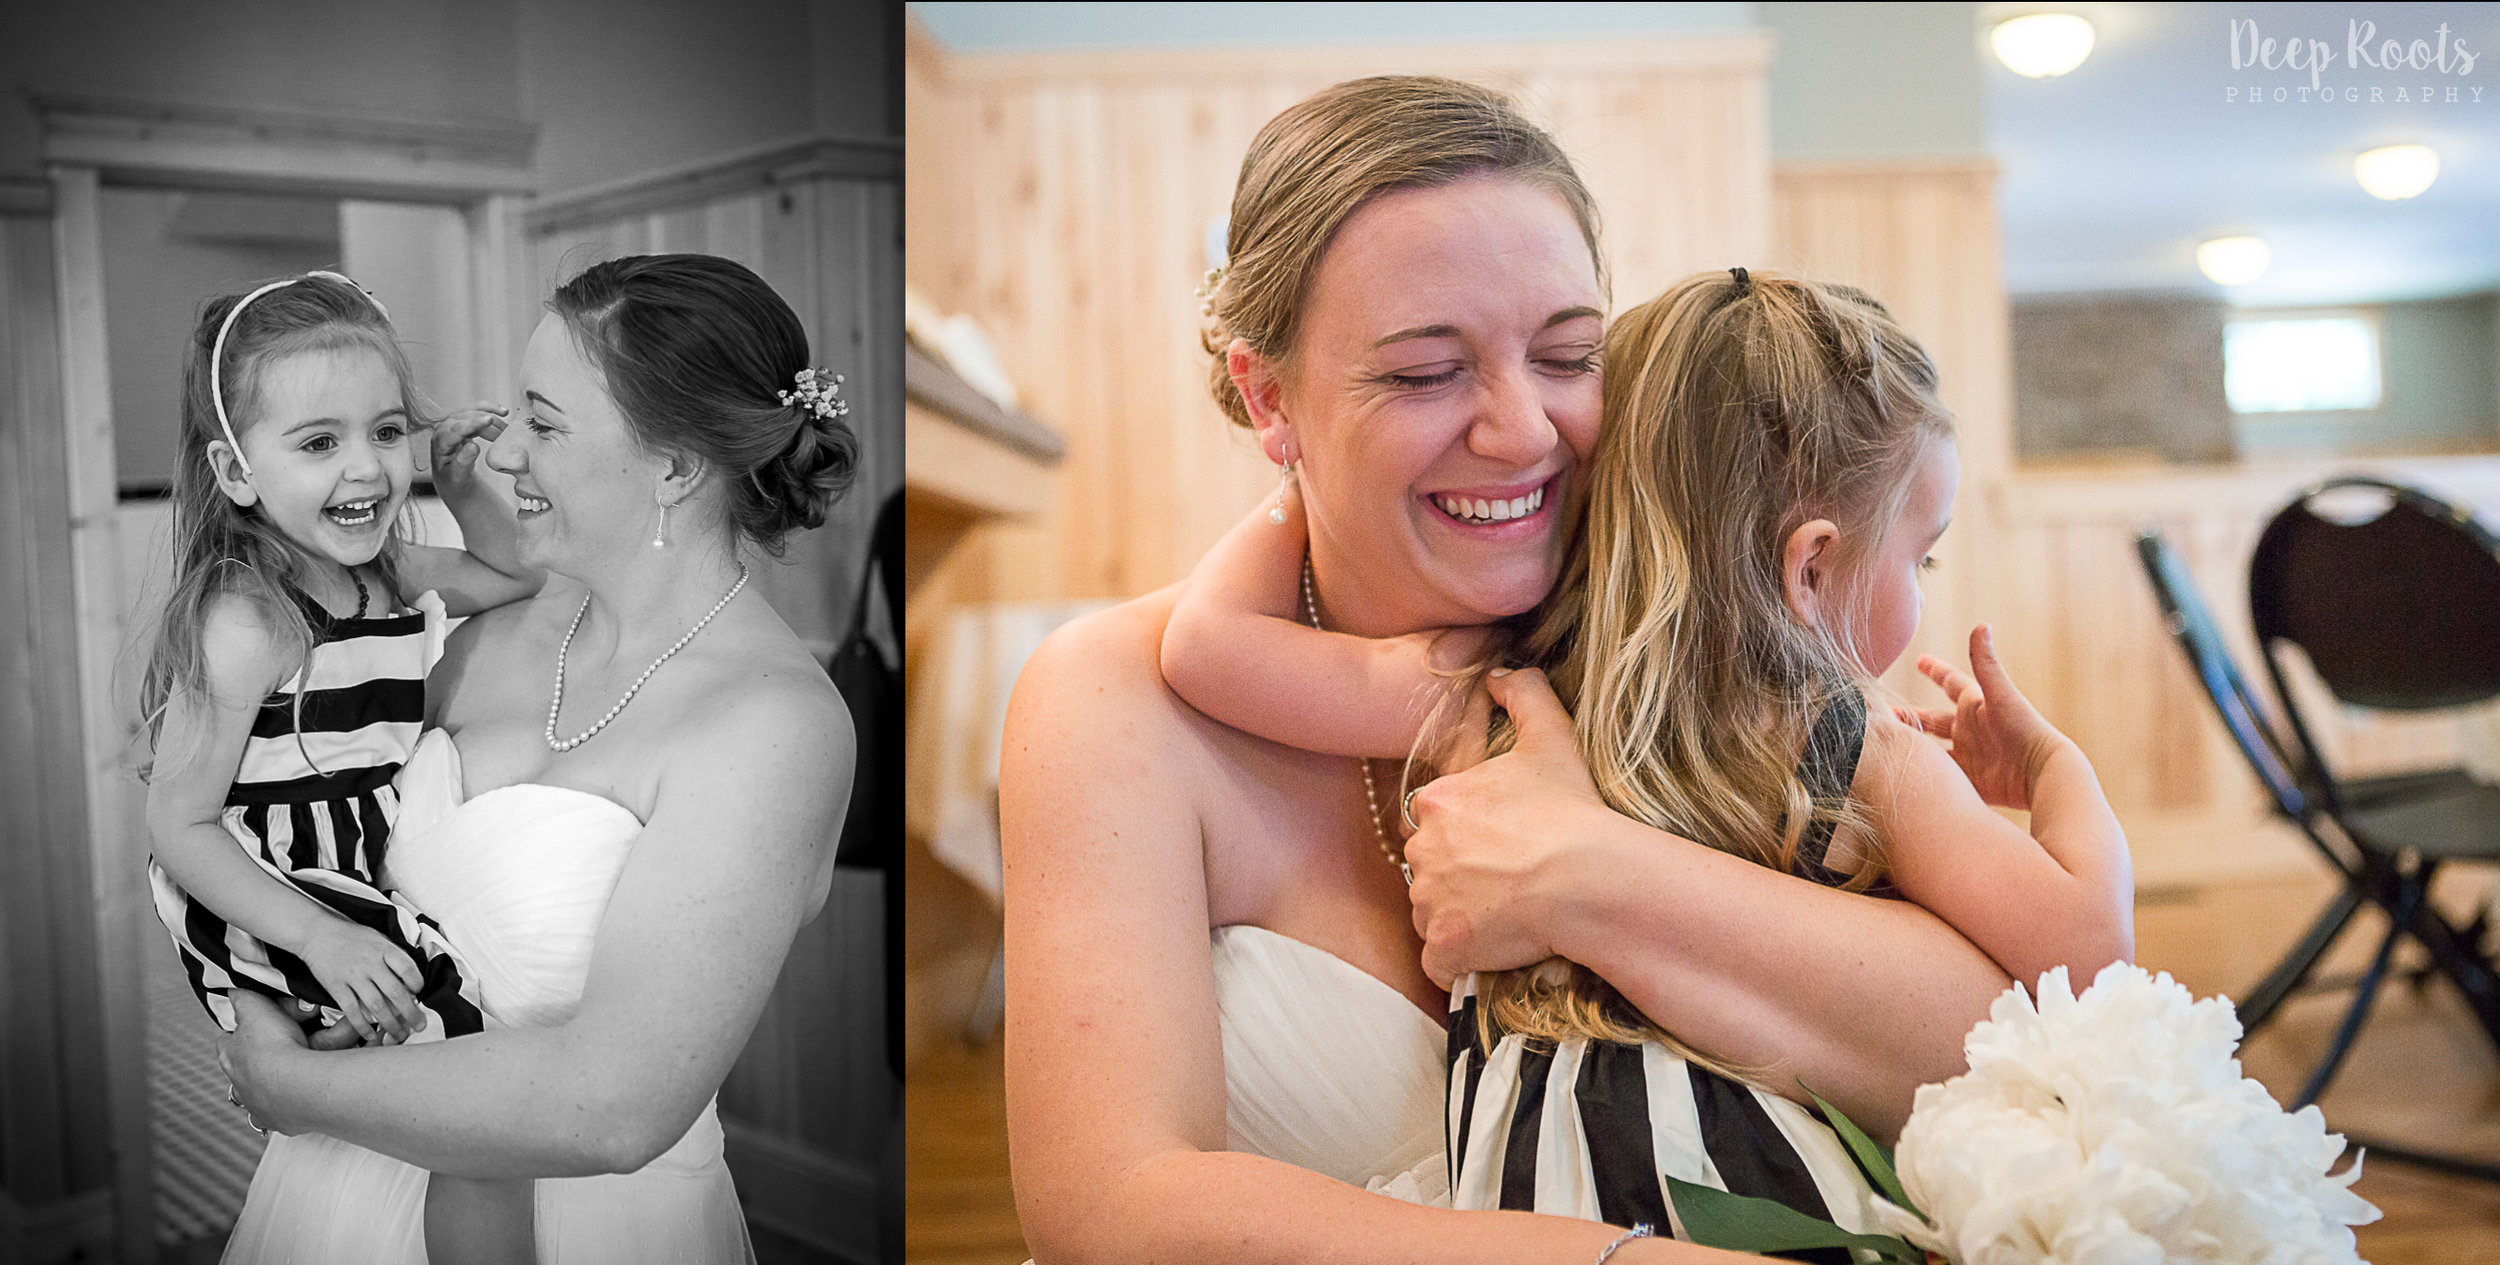 Lily just wanted hugs from her momma before the ceremony!